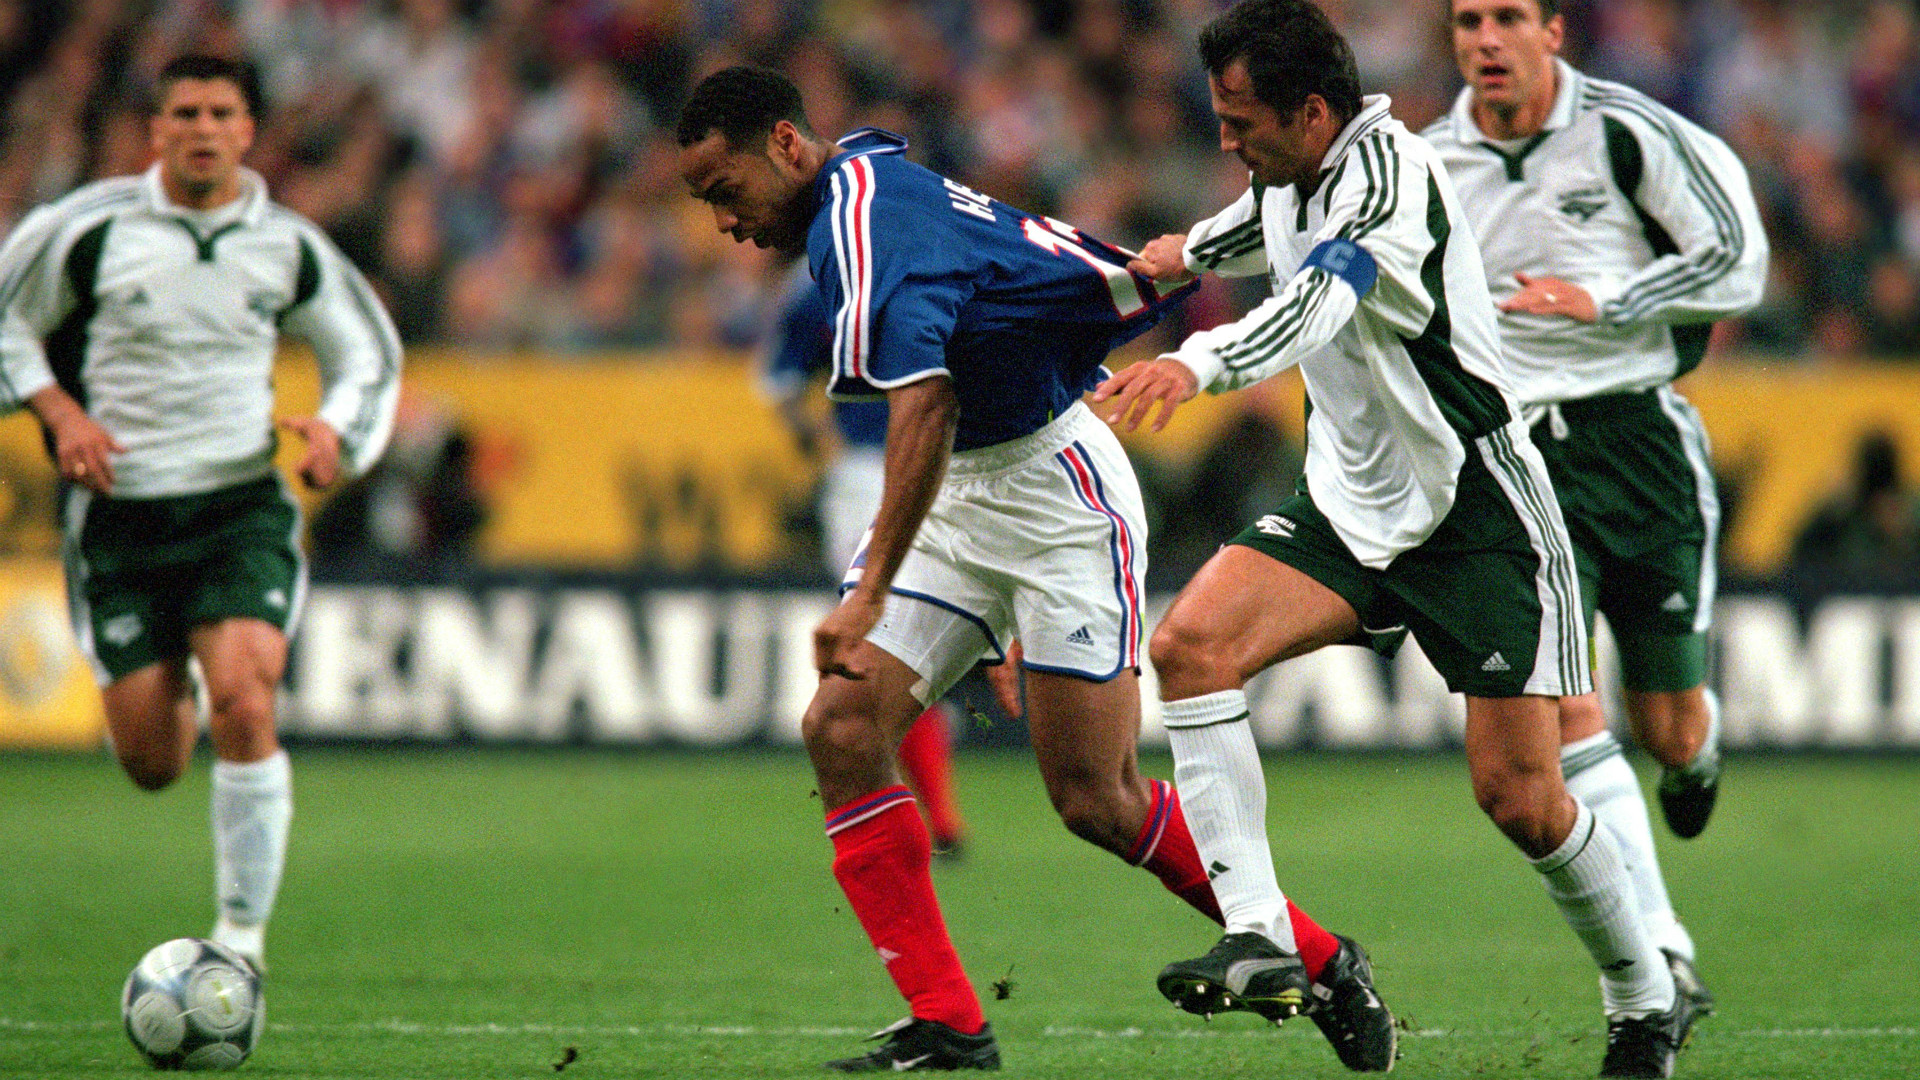 Thierry Henry at Euro 2000 for France against Slovenia